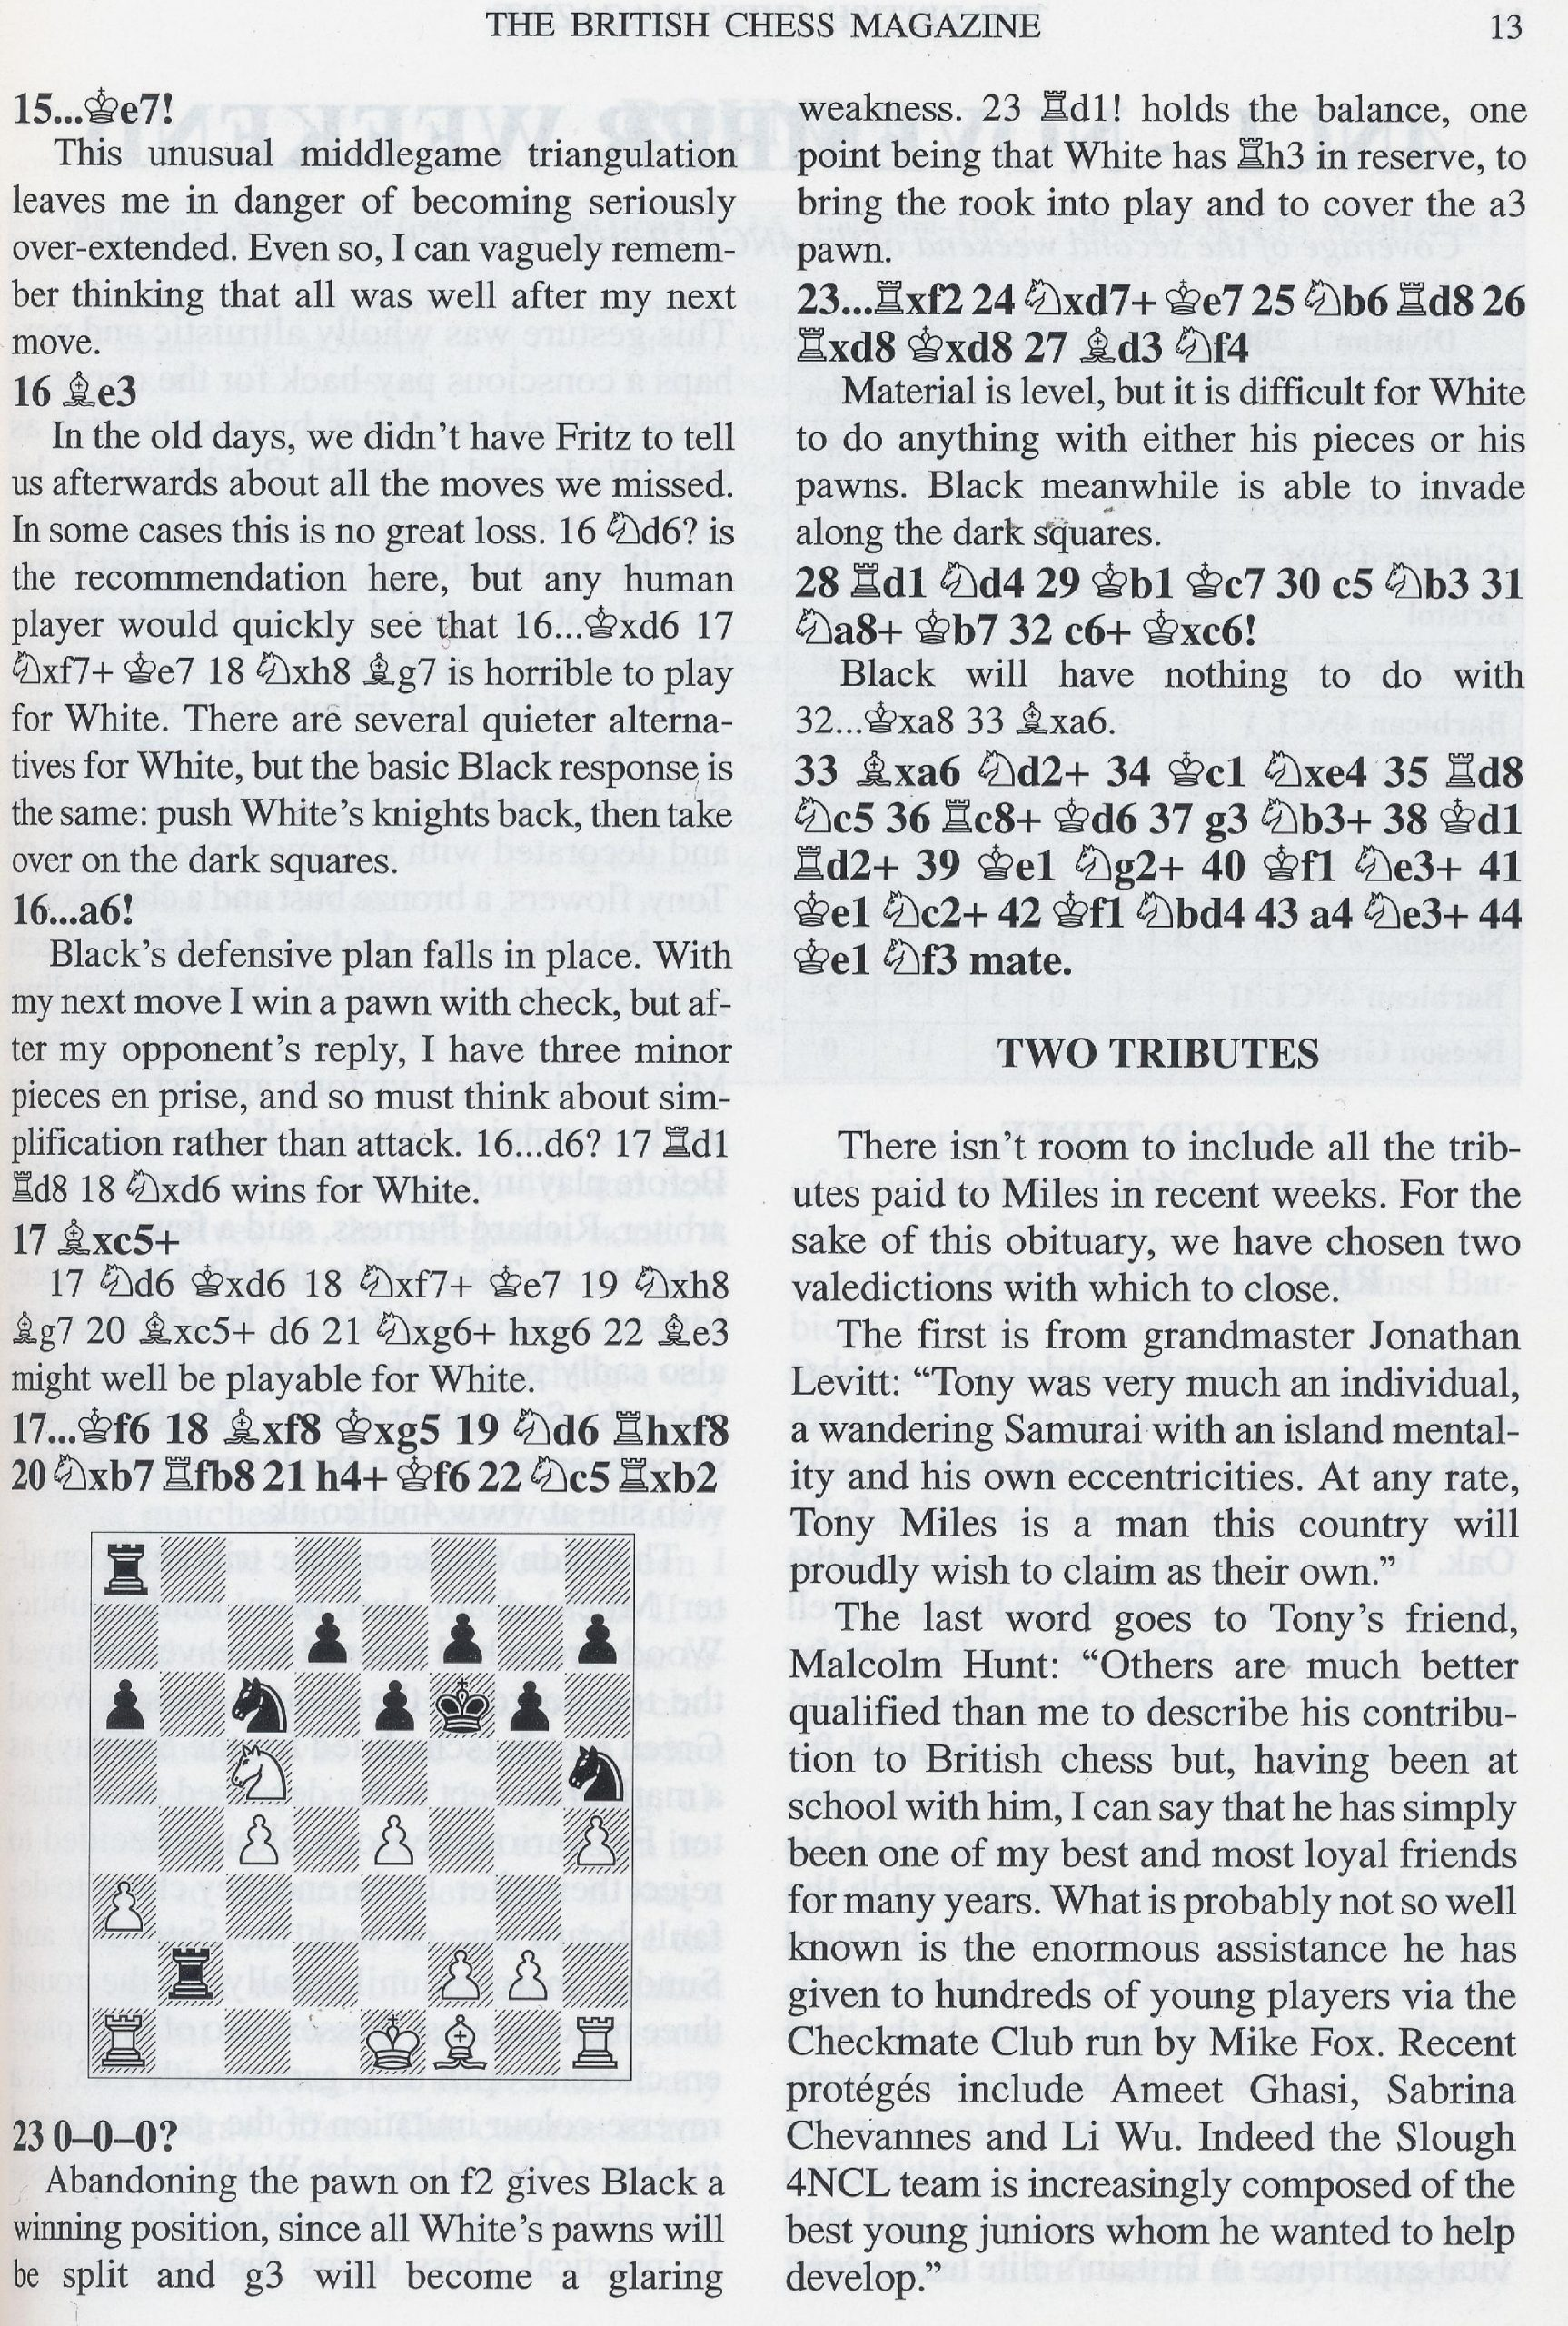 British Chess Magazine, Volume CXXII (122, 2002), Number 1 (January) pp. 6-13